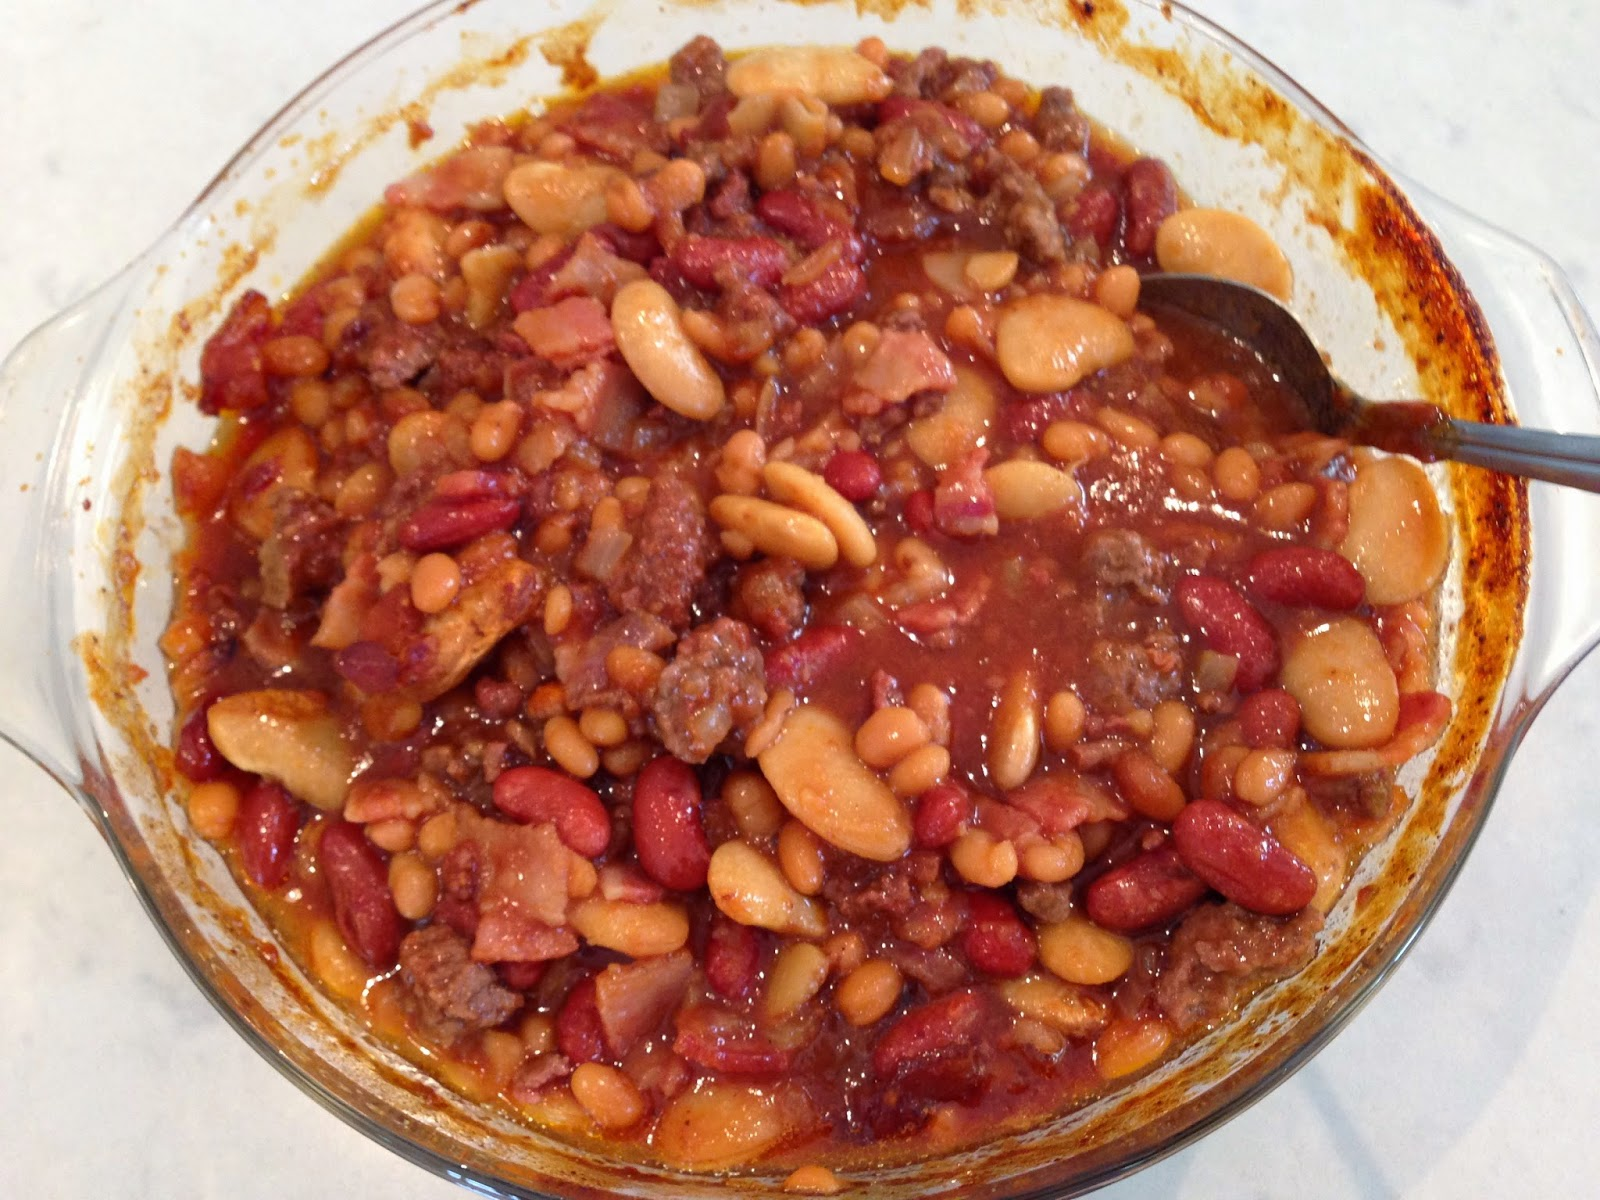 Accounting For All My Blessings: Three-Bean Baked Beans